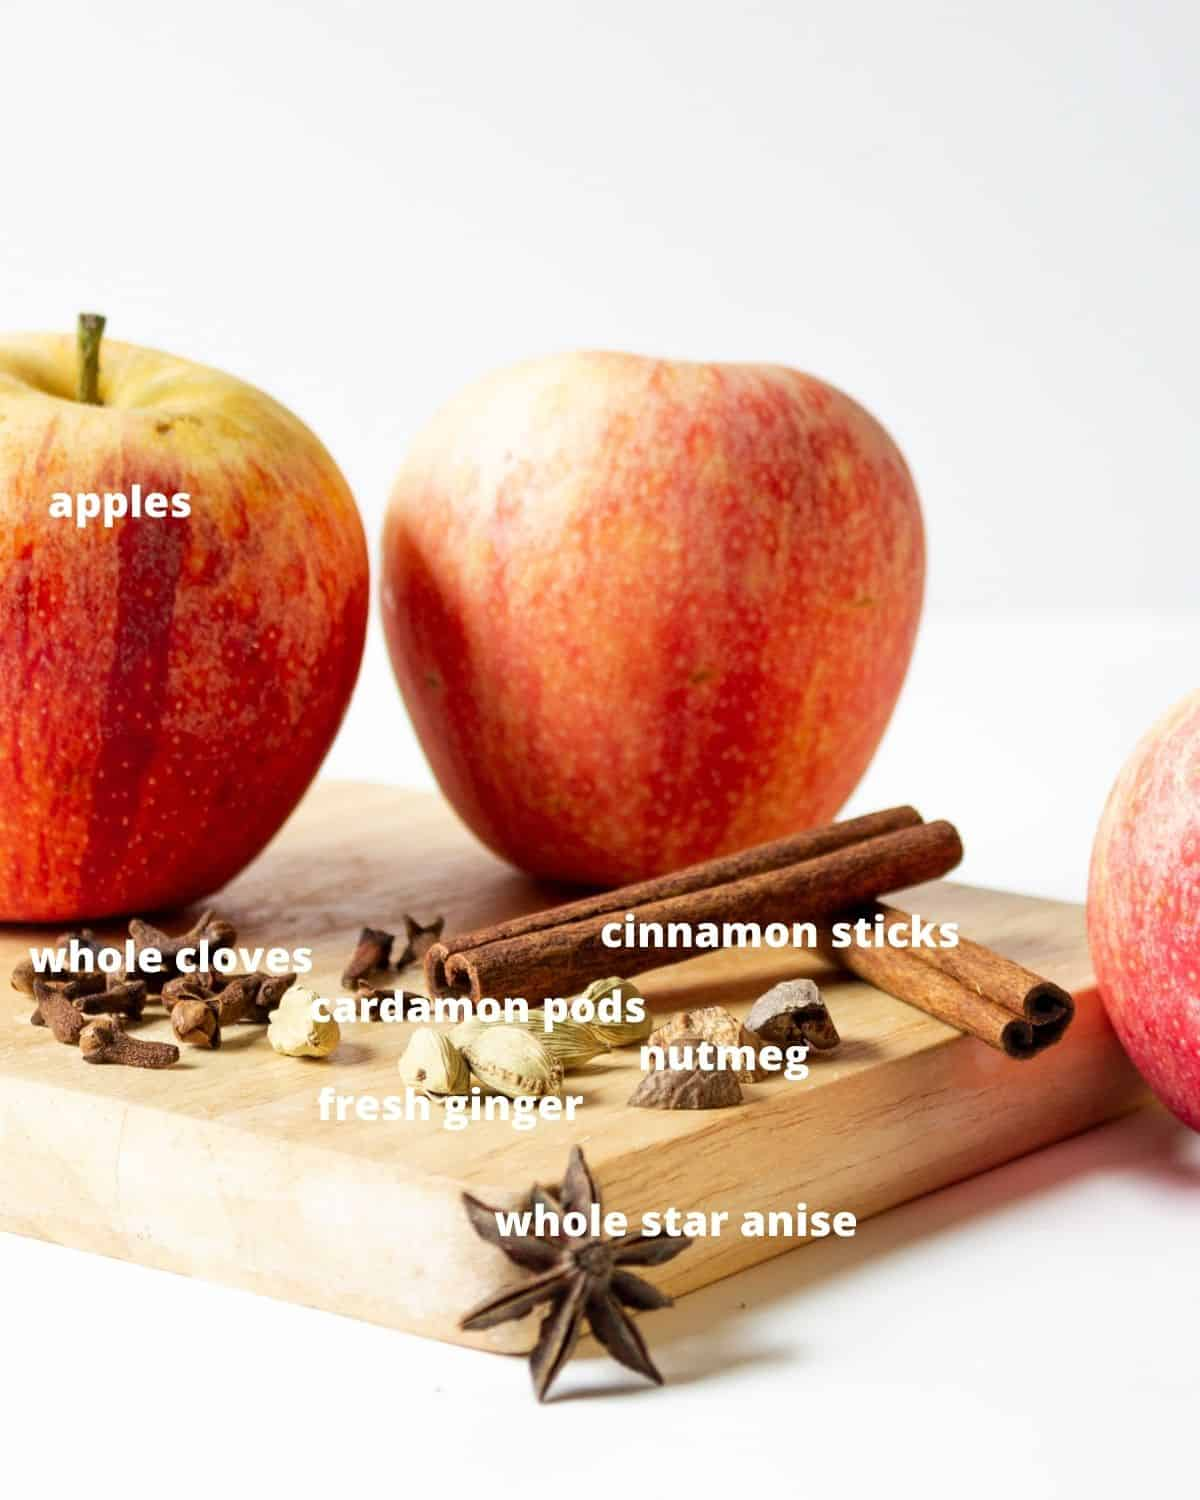 The core ingredients to make apple pie vodka